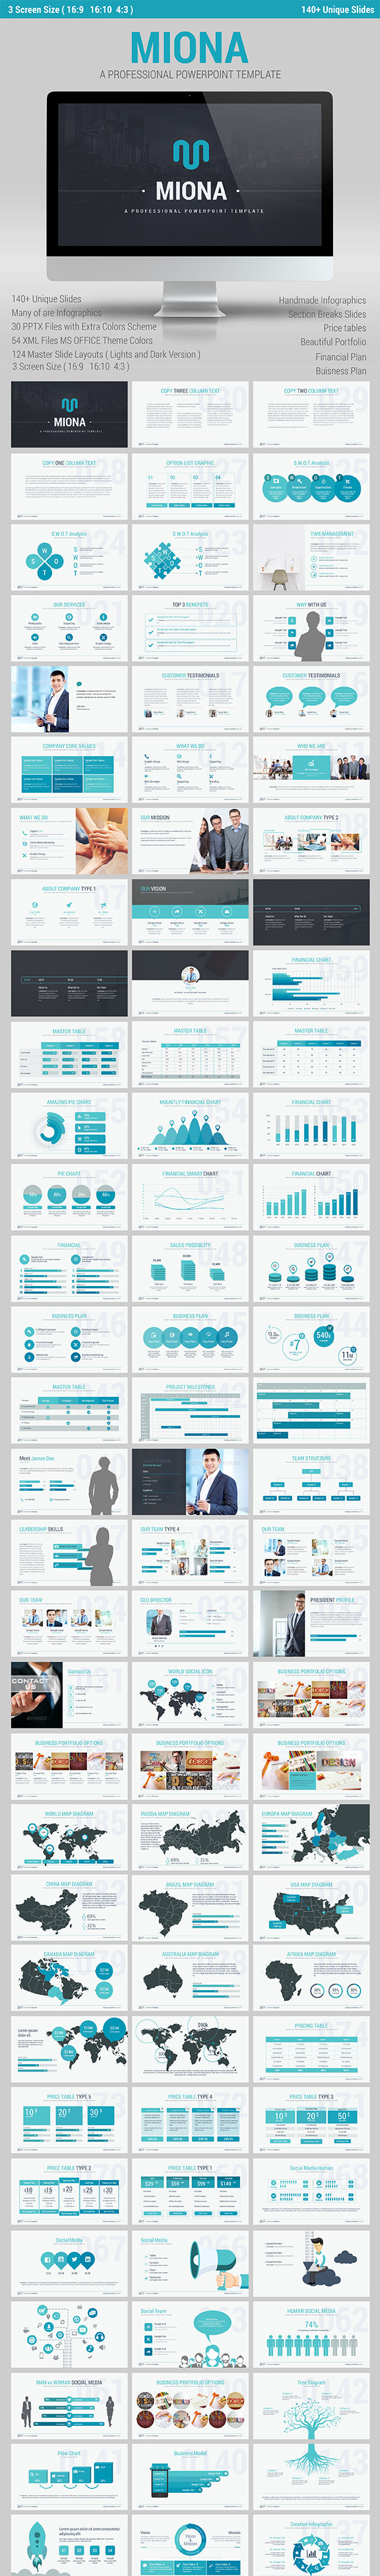 Miona Multipurpose Powerpoint Template (PowerPoint Templates)